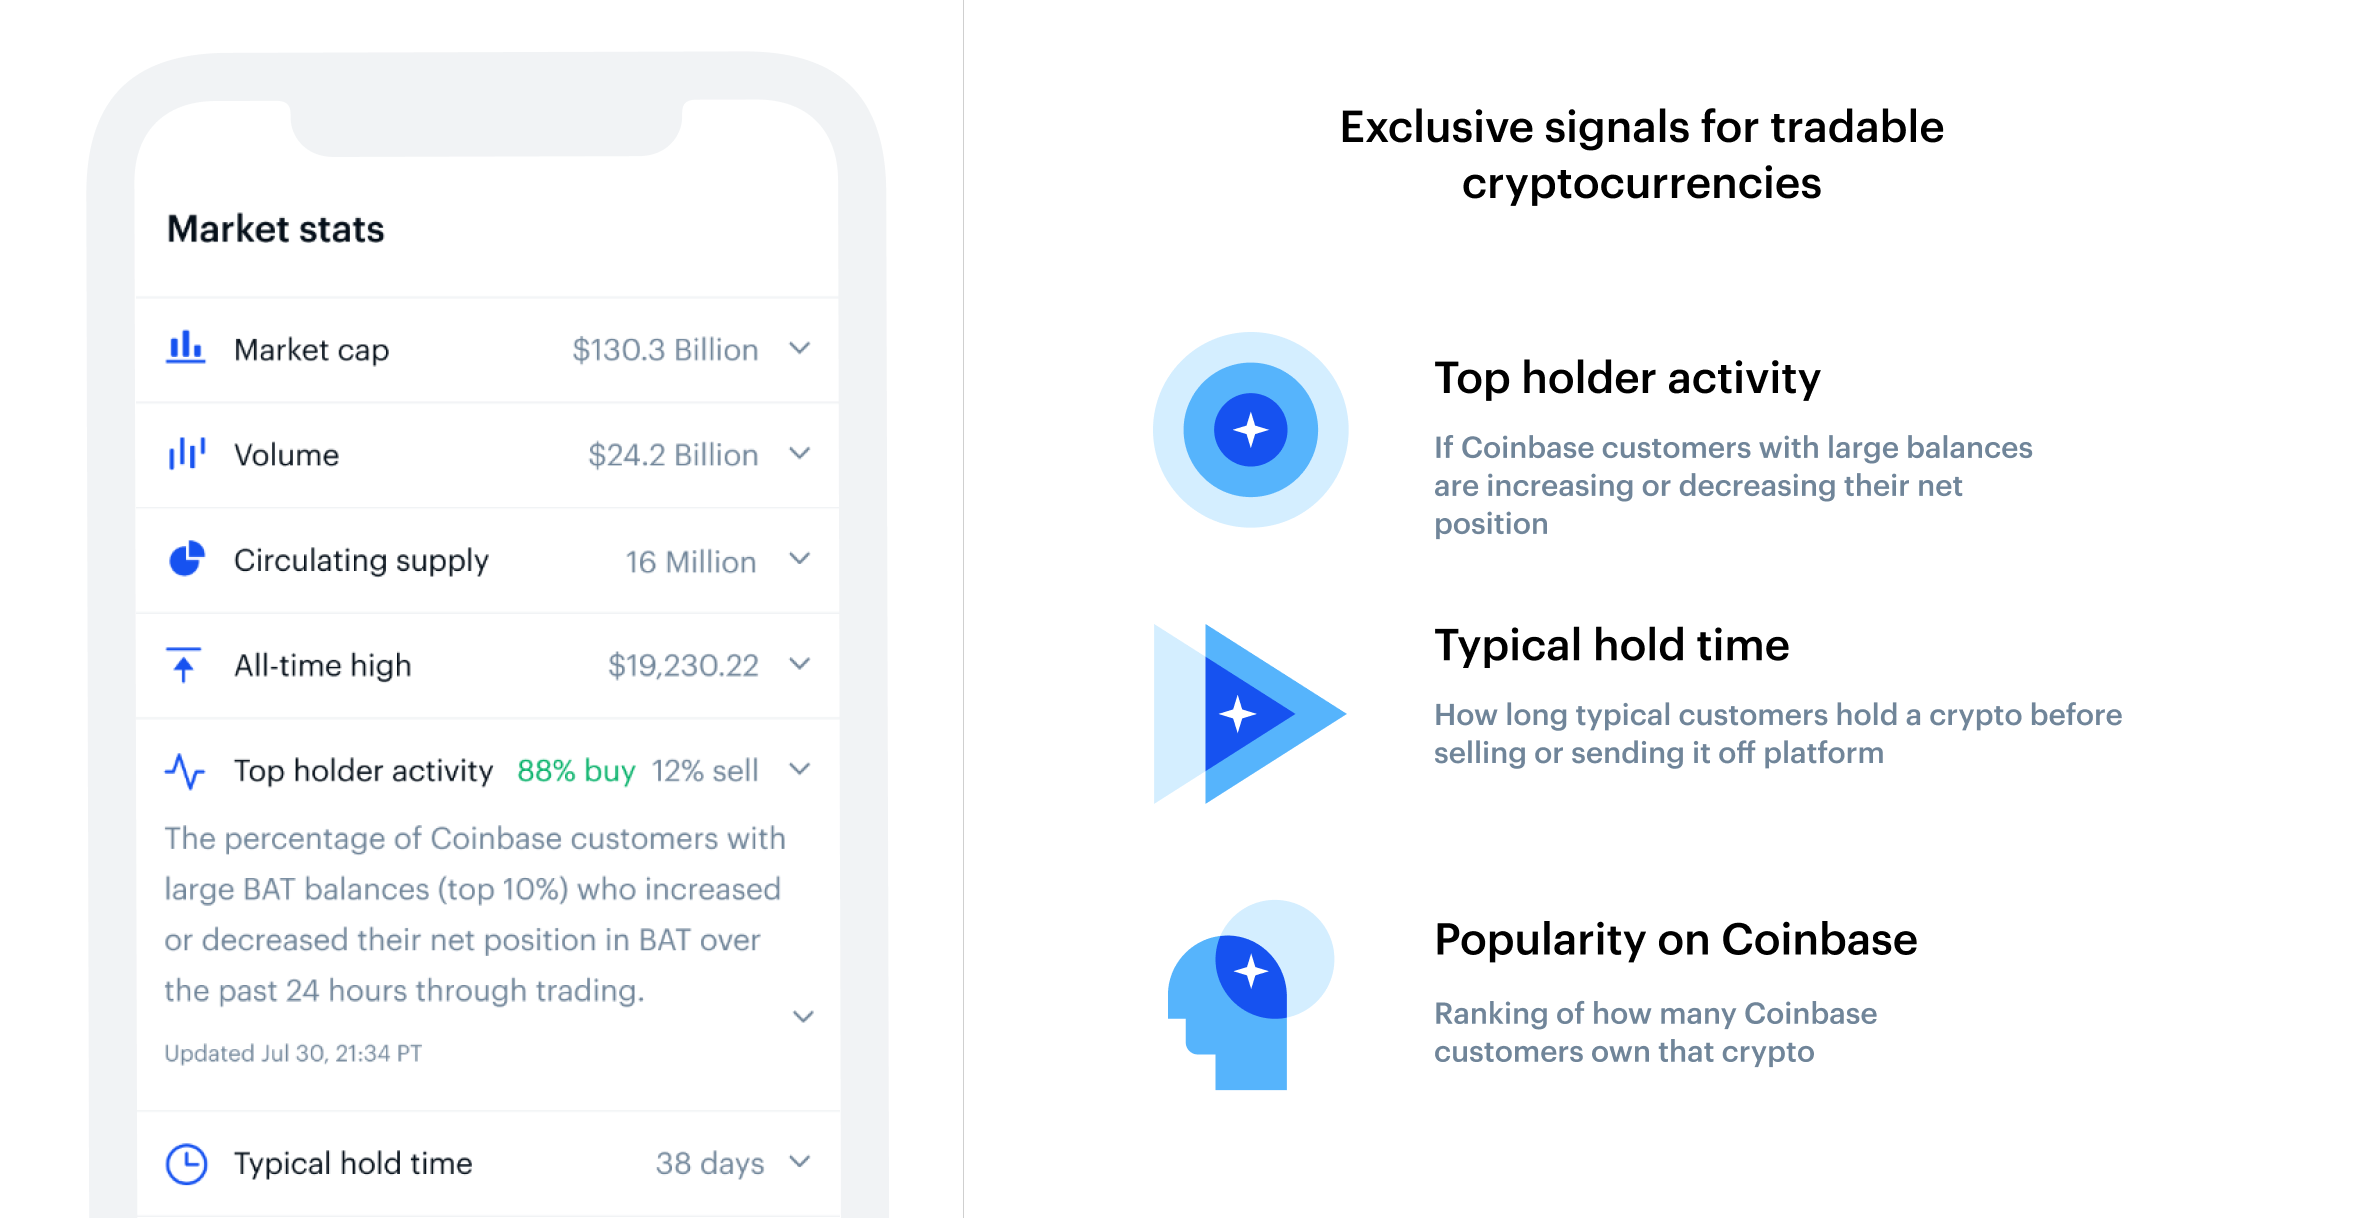 Coinbase tells you if top holders are buying or selling a crypto asset